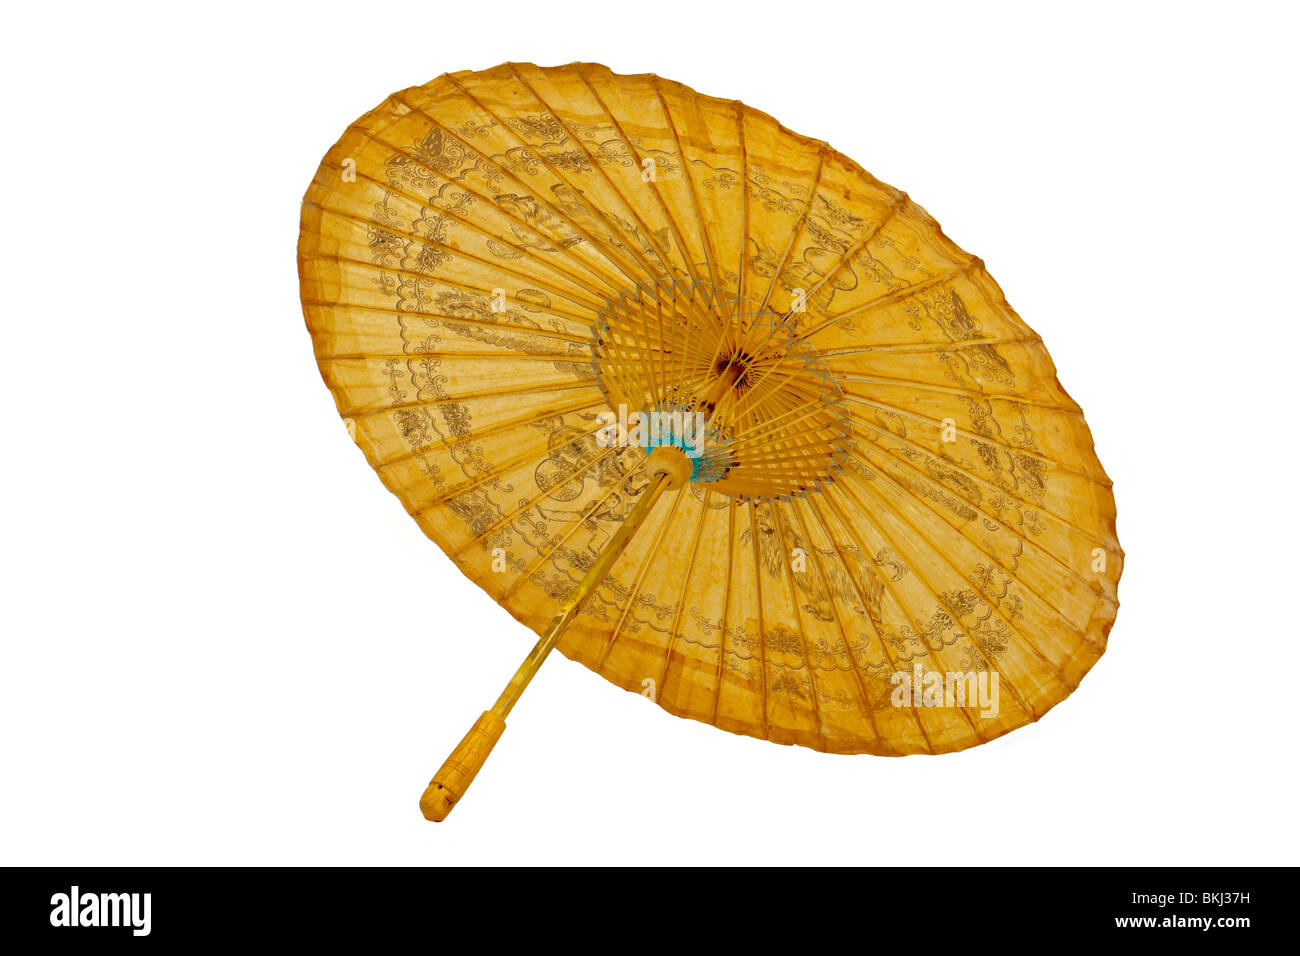 Antique Chinese paper parasol with oriental hand painted decorations, isolated against white background - Stock Image